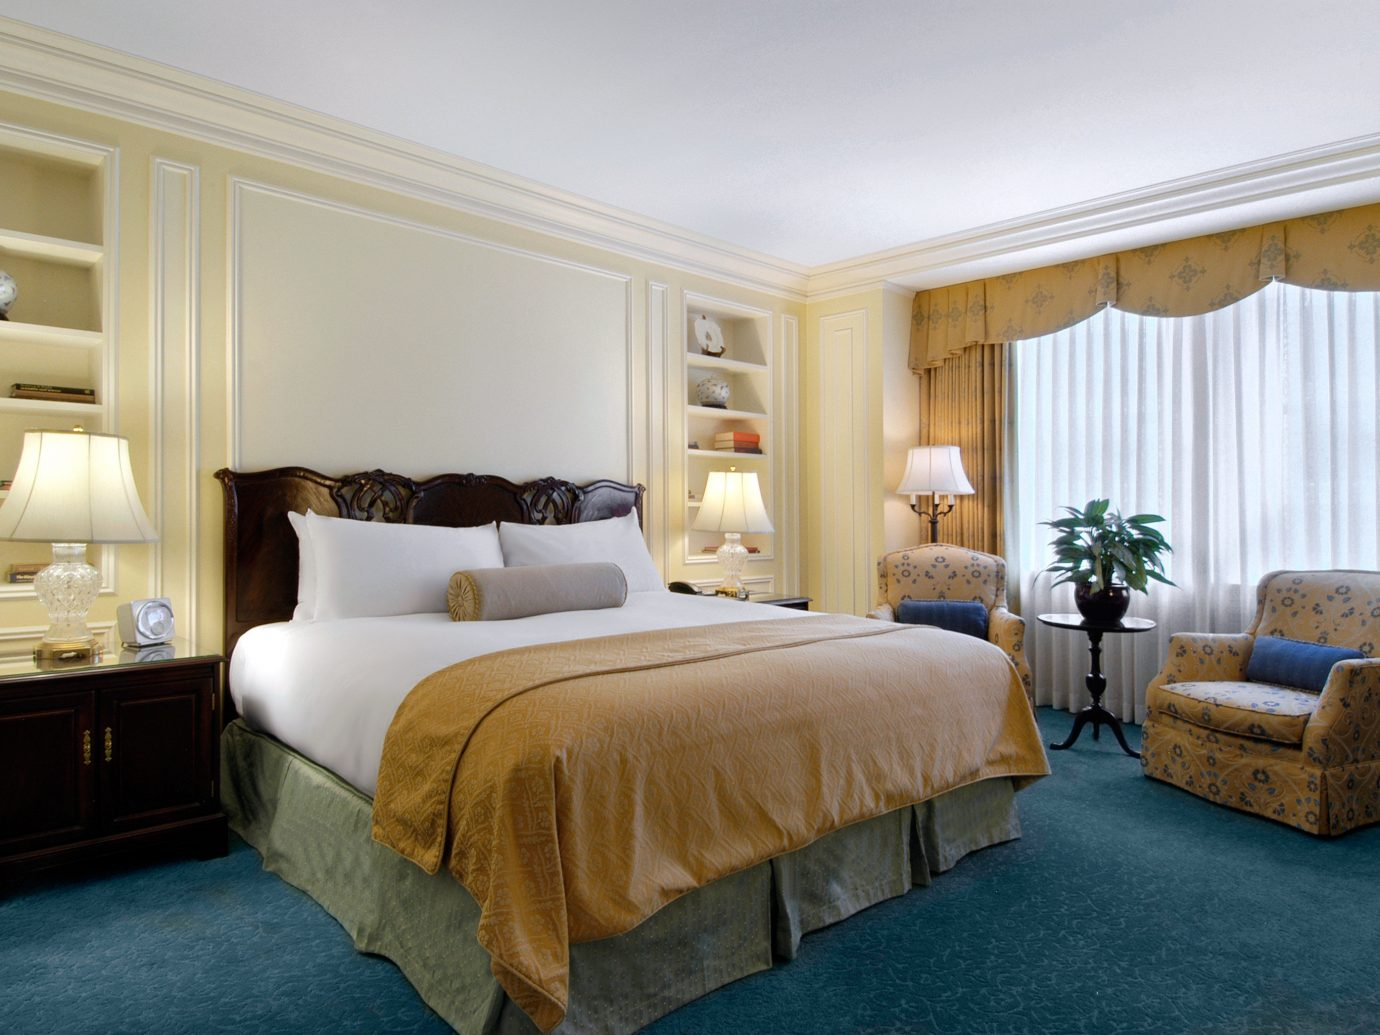 Bedroom Classic Historic Hotels Suite bed indoor floor wall room hotel property ceiling estate interior design home real estate living room furniture cottage containing